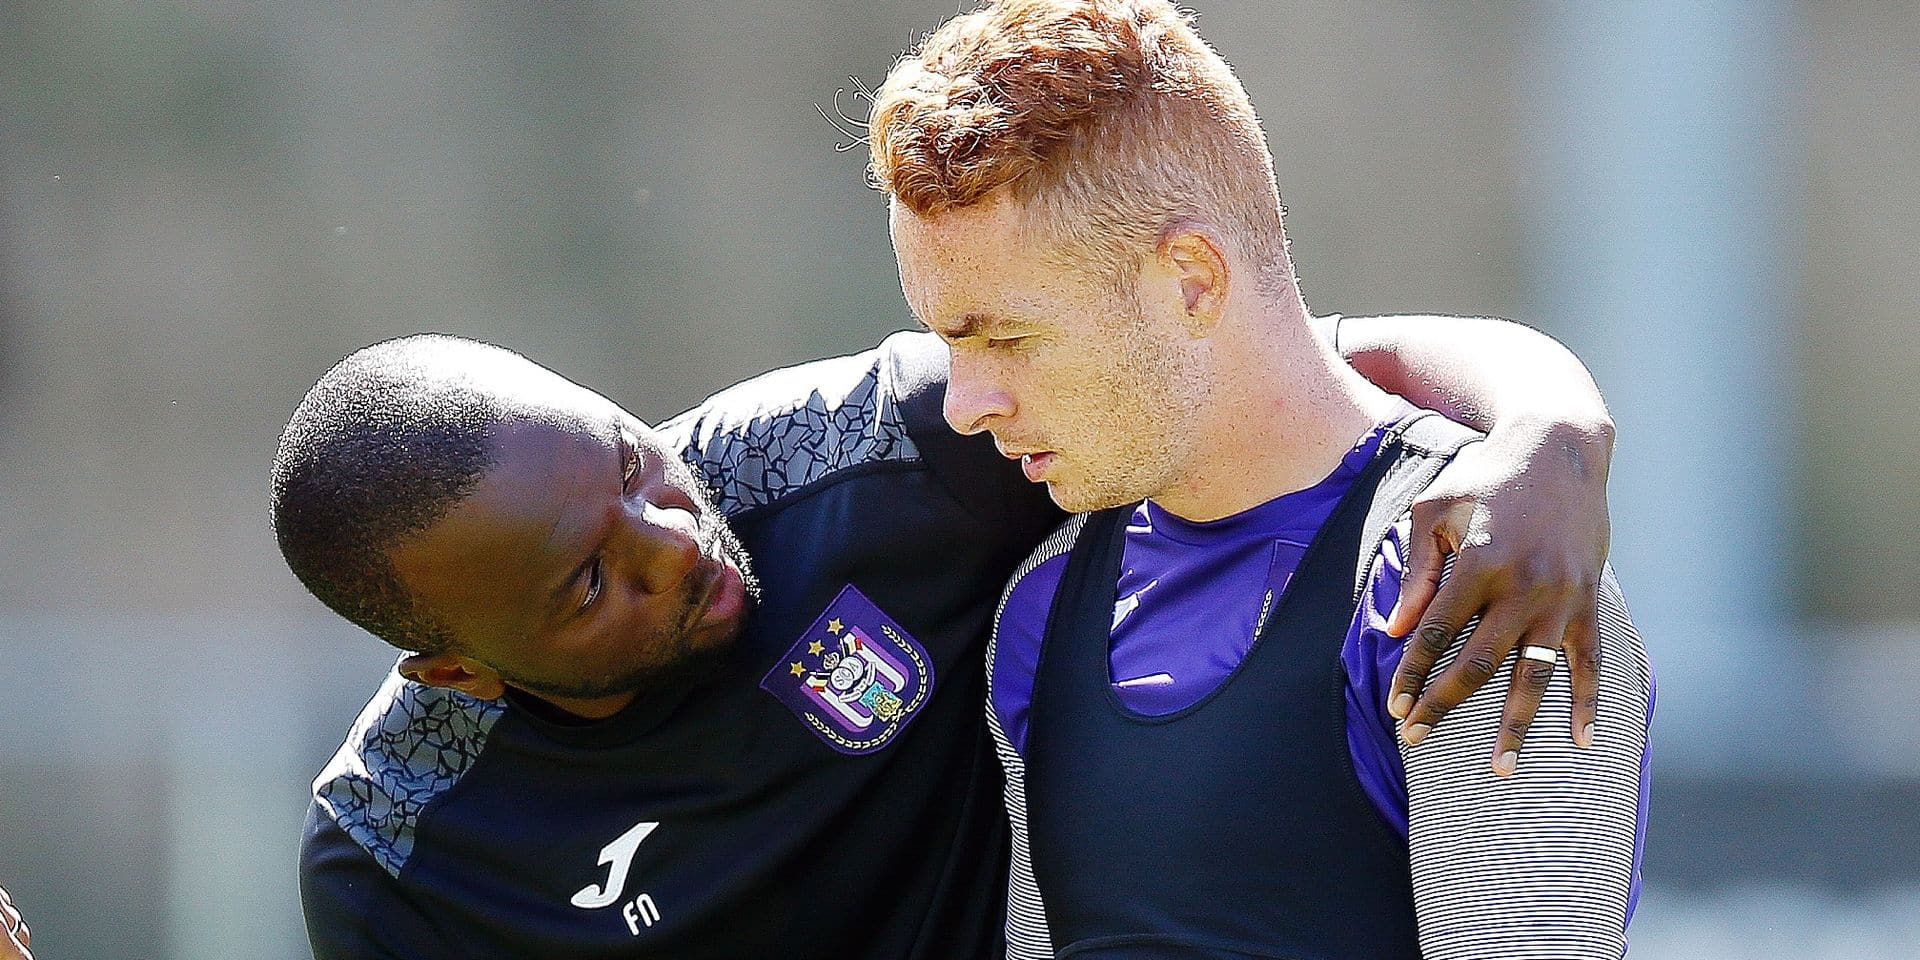 Anderlecht's assistant coach Foribert Ngalula and Anderlecht's Adrien Trebel pictured during a training session of Belgian soccer team RSC Anderlecht at their summer camp, Thursday 04 July 2019 in Venlo, The Netherlands, in preparation of the upcoming 2019-2020 Jupiler Pro League season. BELGA PHOTO BRUNO FAHY